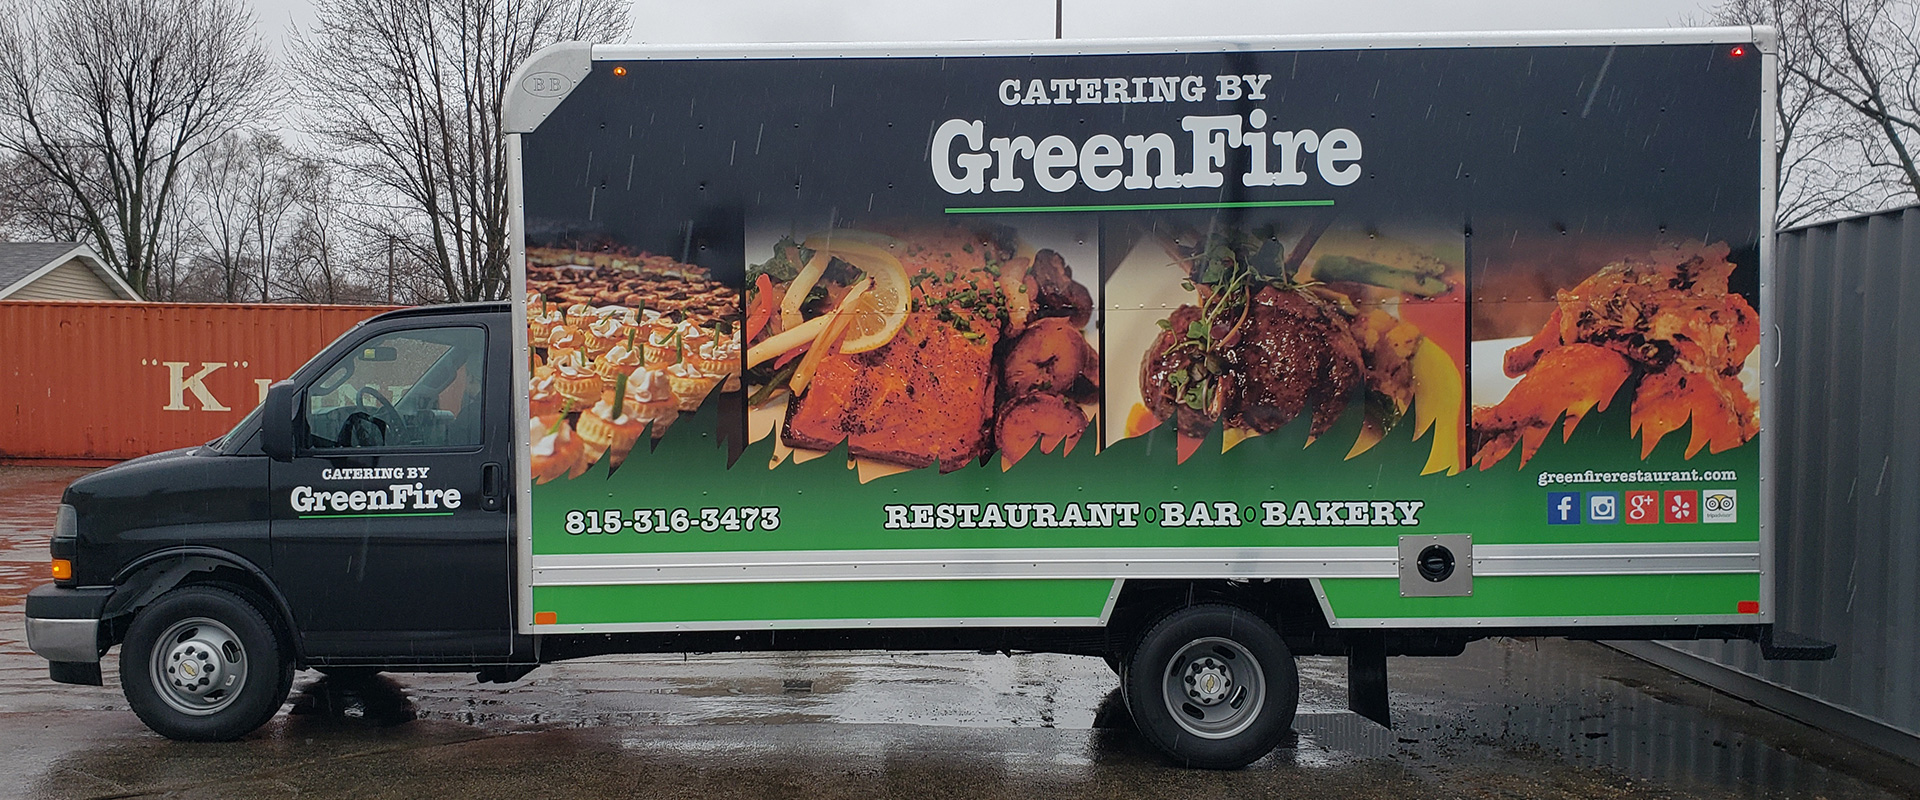 GreenfireBoxTruck